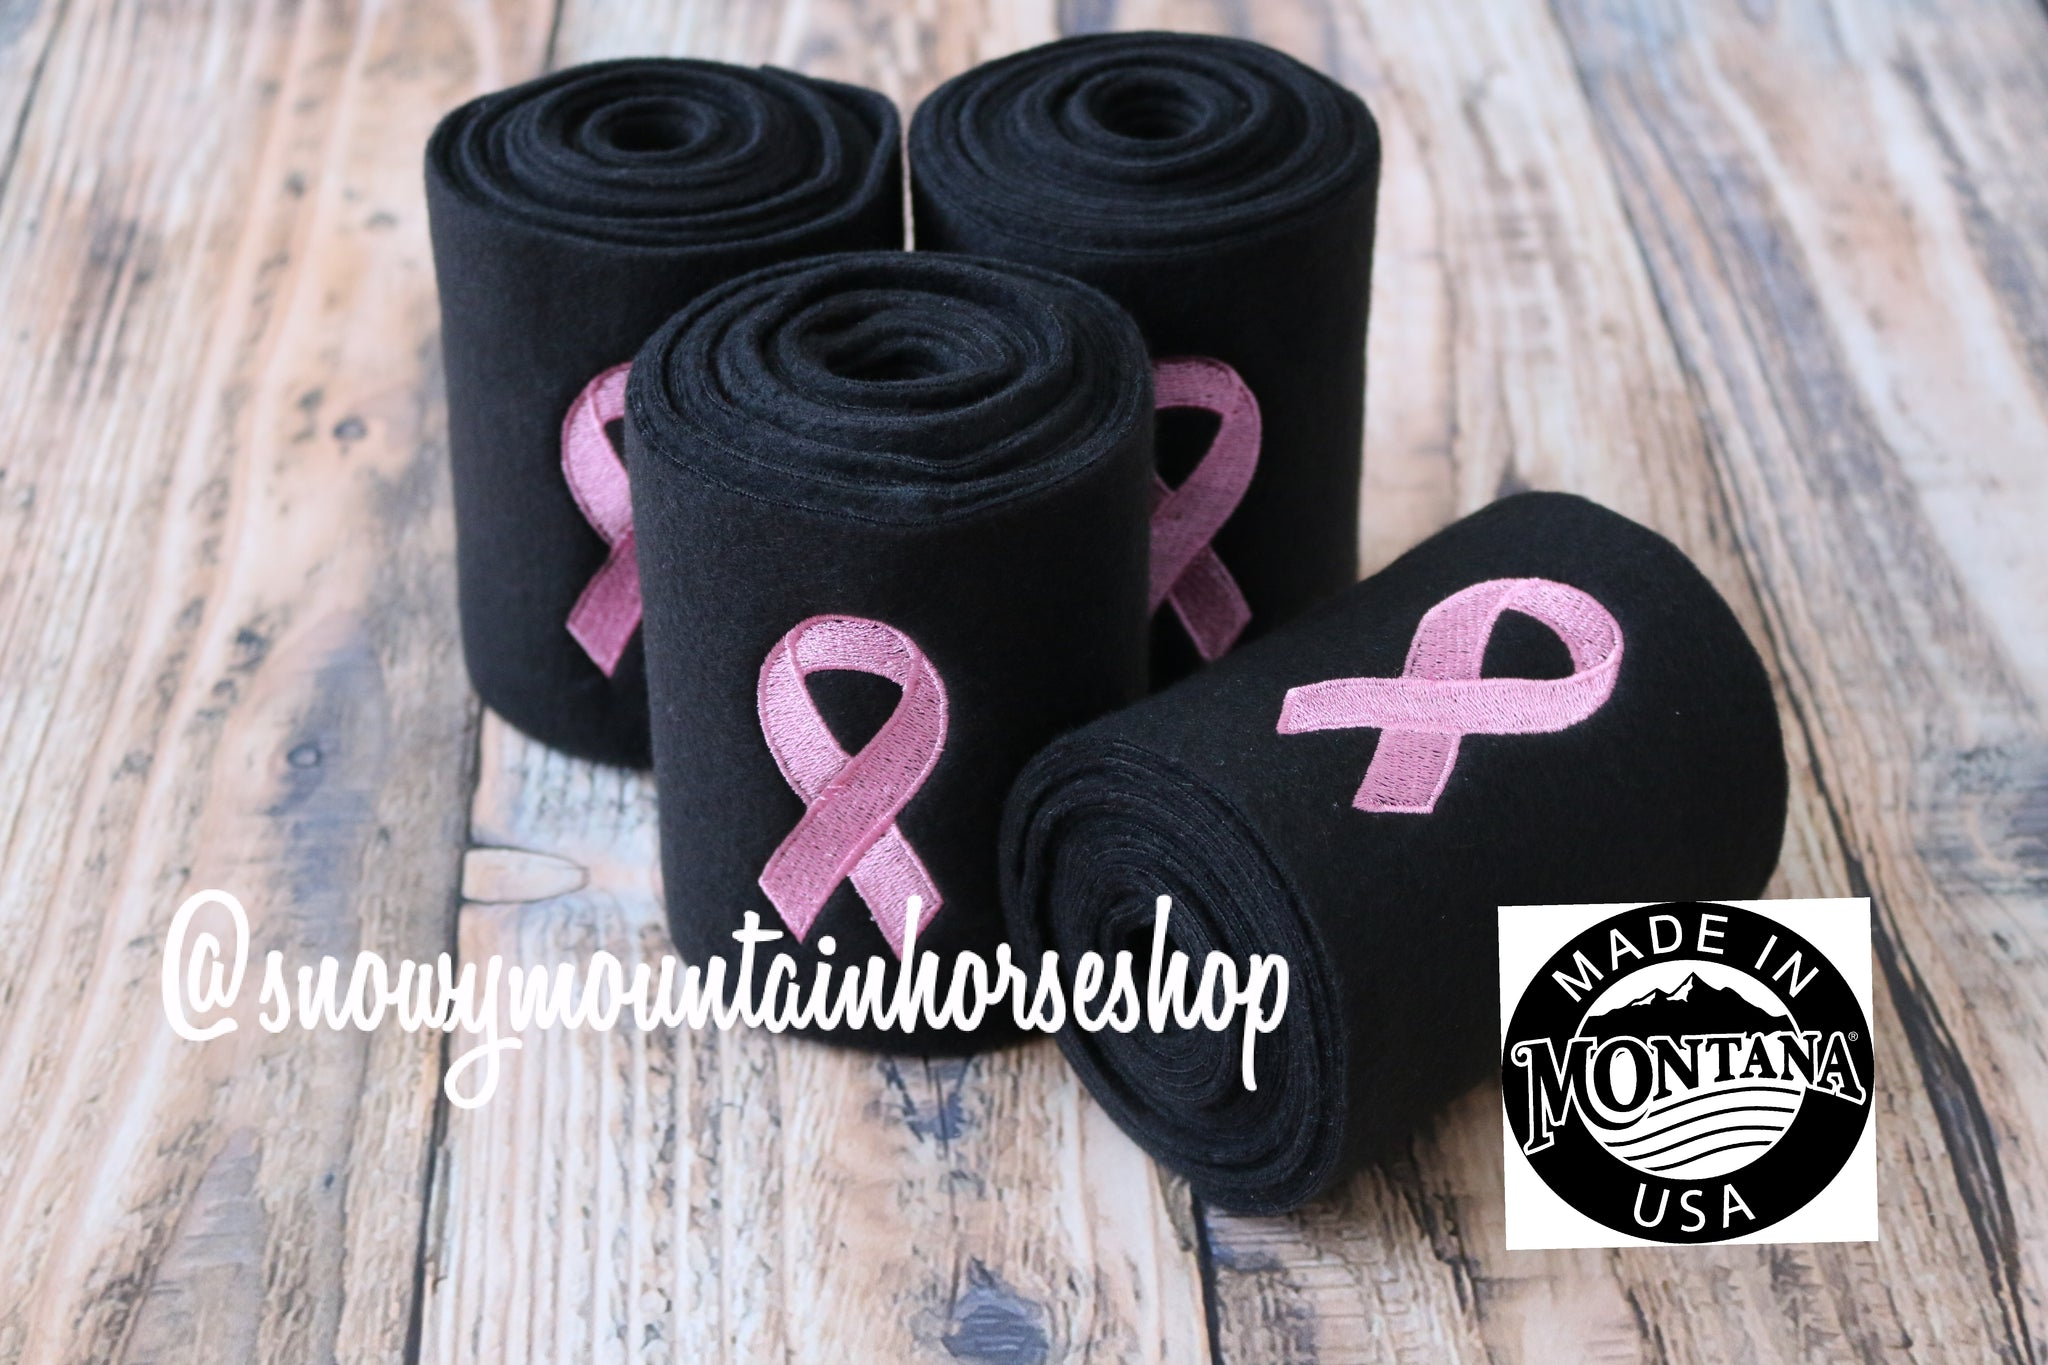 Polo Wraps / Stable Wraps, Set of 4 OR Set of 2, Standard Size, Pink Breast Cancer Awareness Ribbon Embroidered Polo Wraps